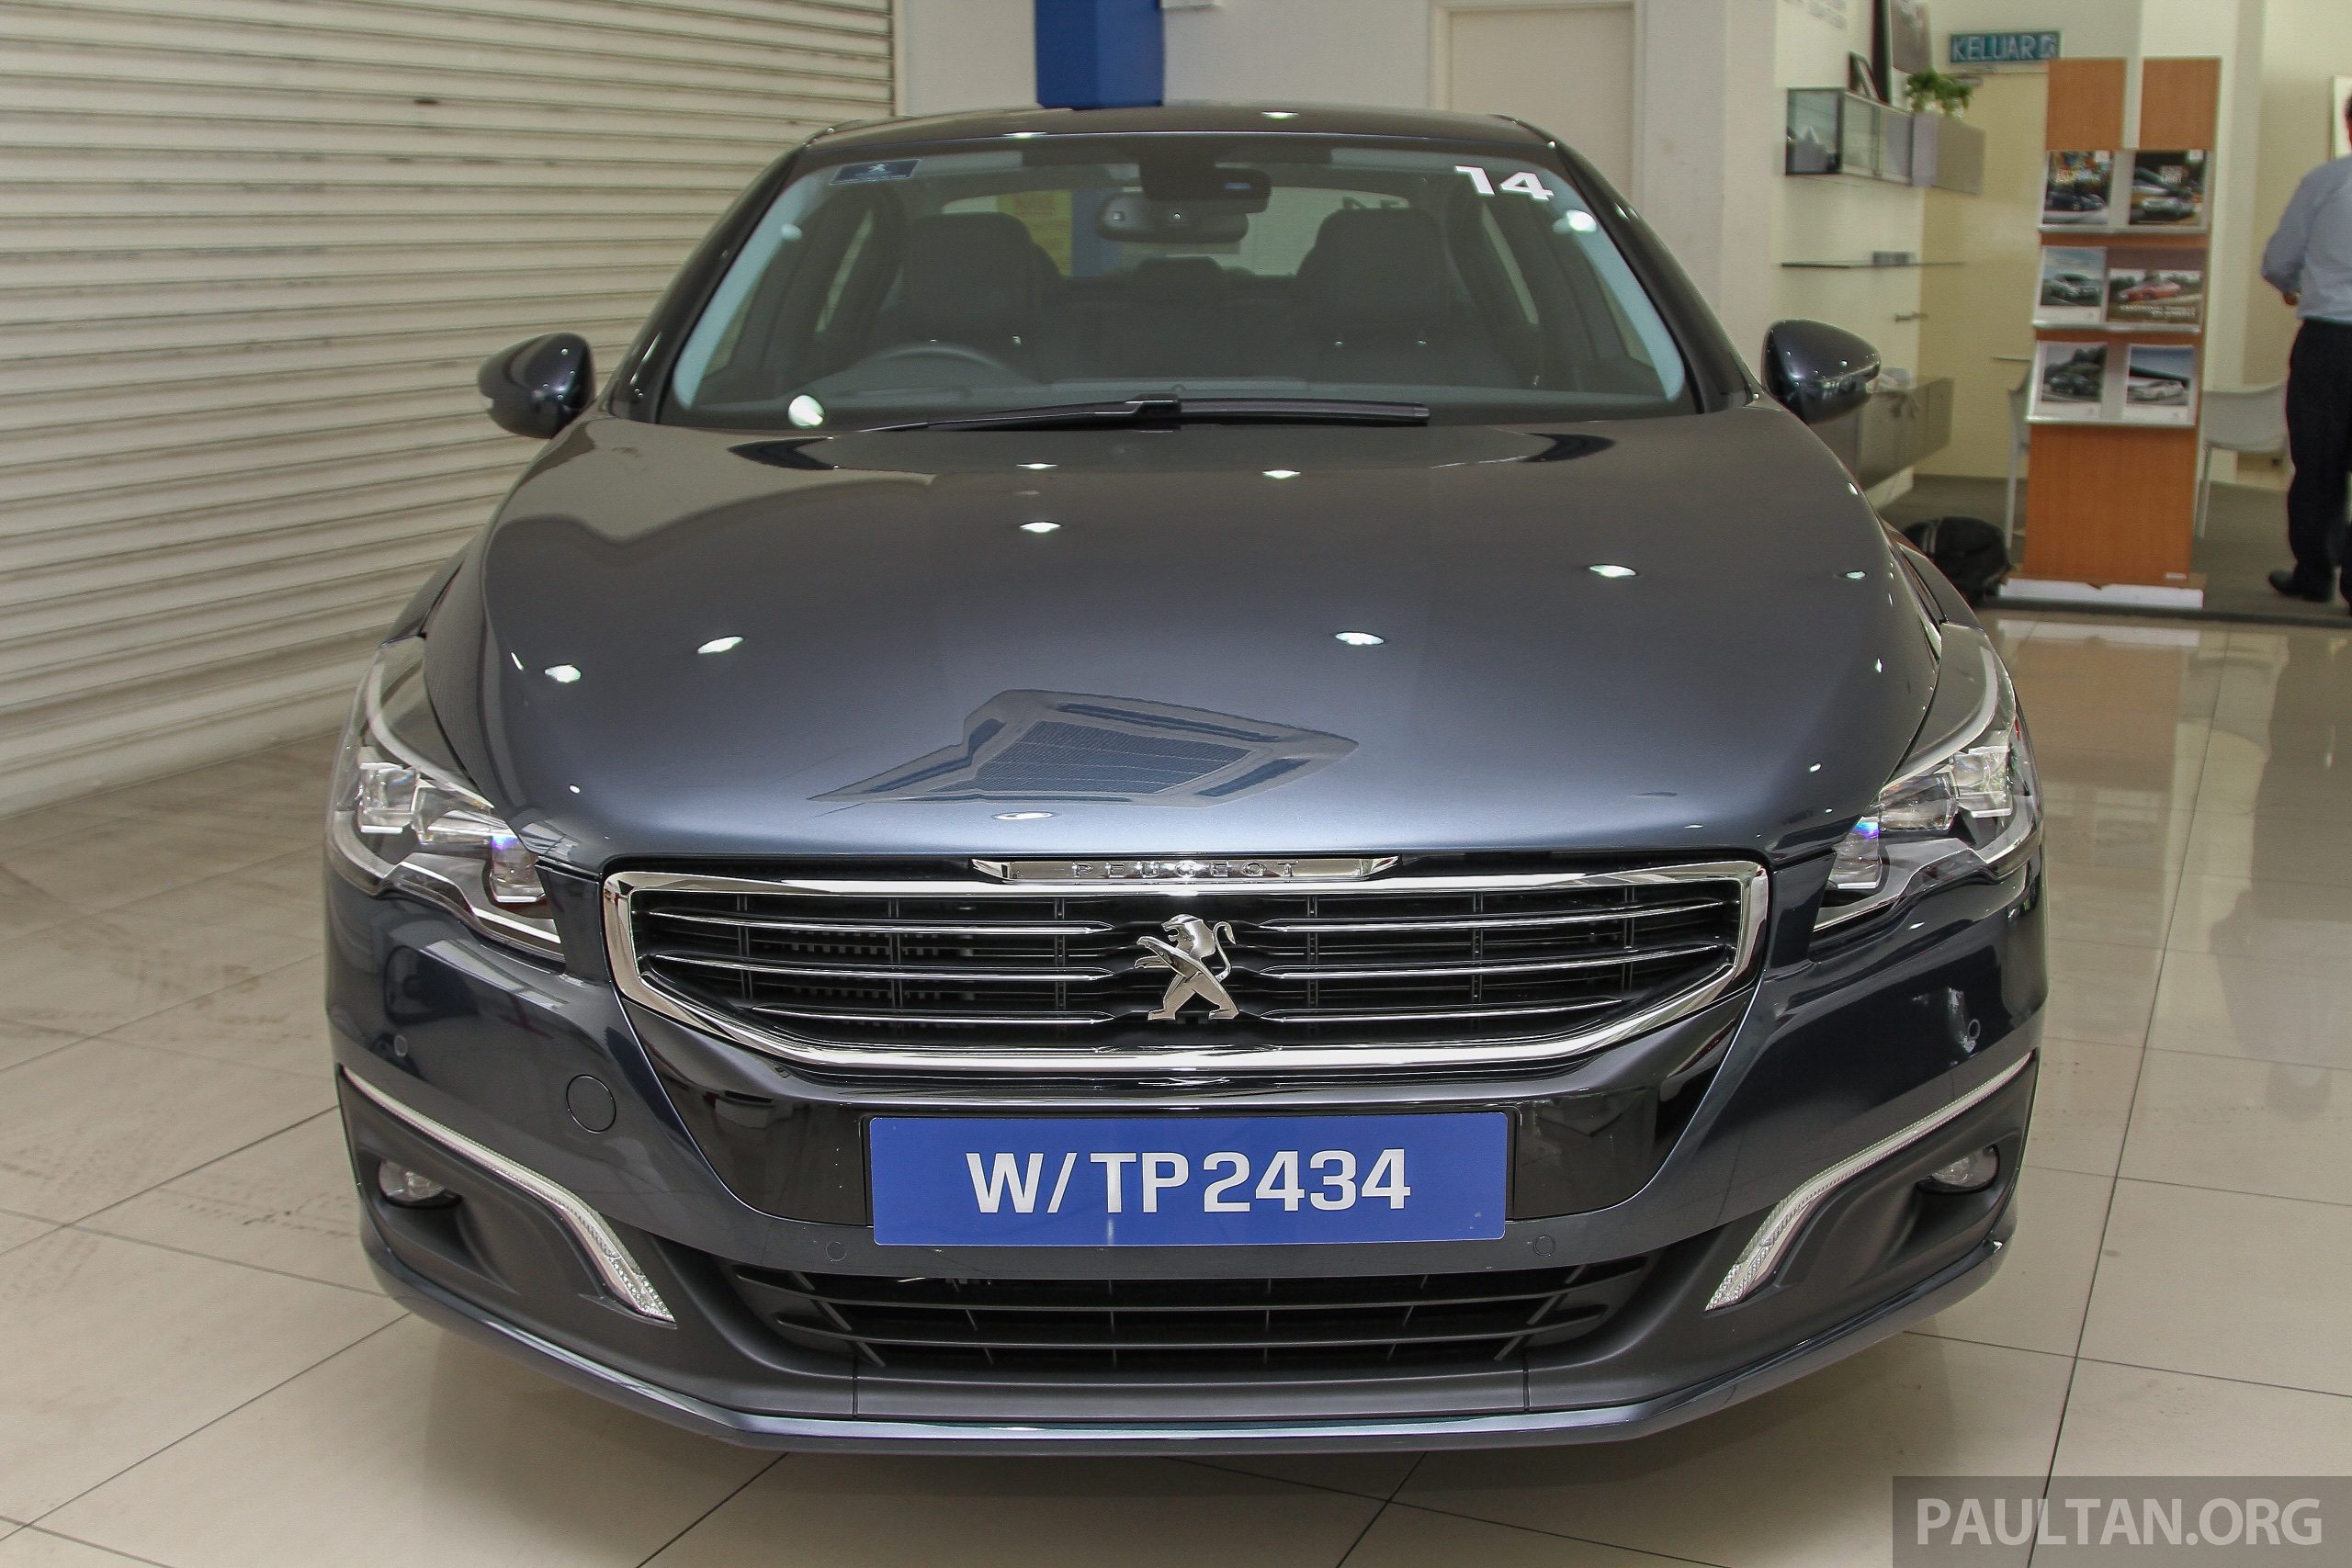 gallery peugeot 508 thp facelift in showrooms paul tan image 339645. Black Bedroom Furniture Sets. Home Design Ideas